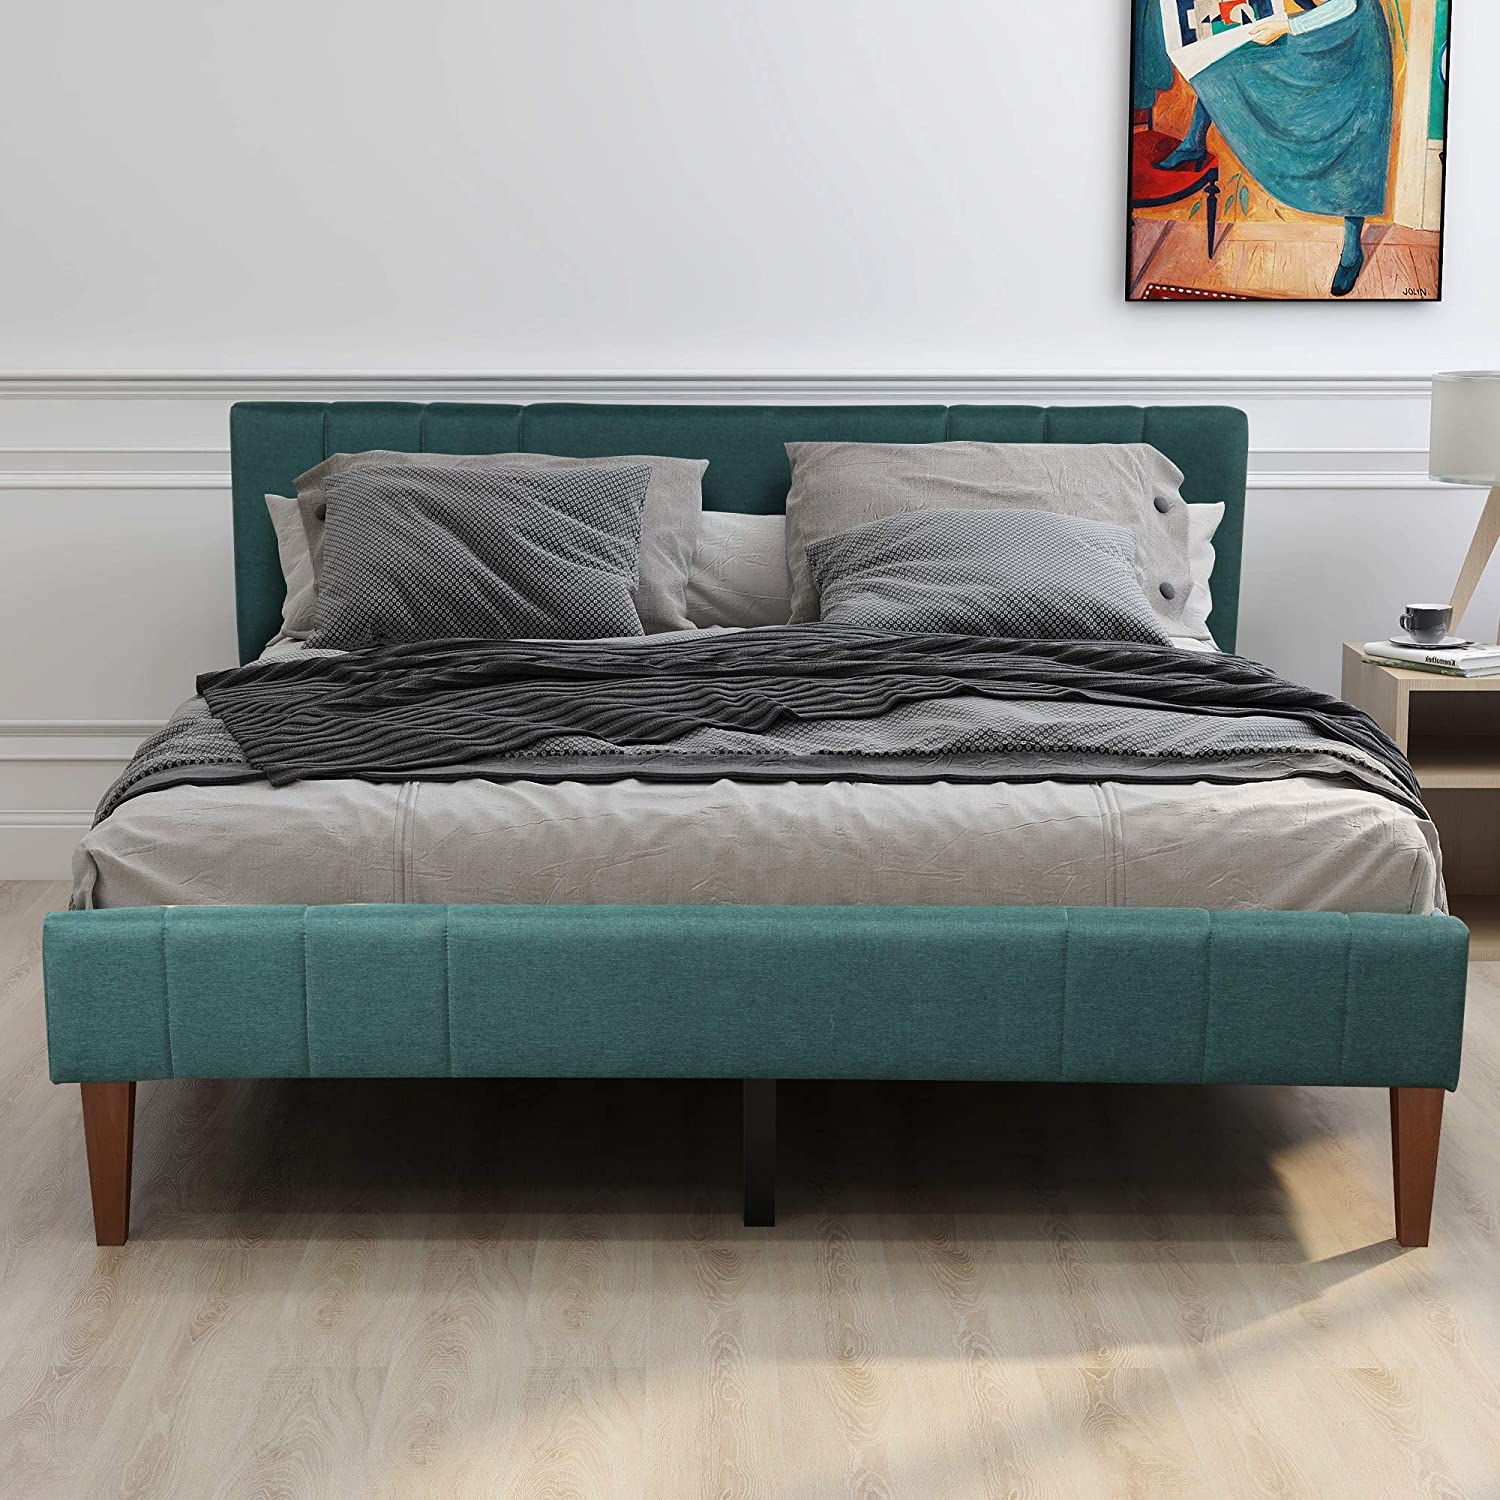 King Bed Frame, Merax Upholstered Platform Bed with Headboard, No Box Spring Needed, King Size, Green